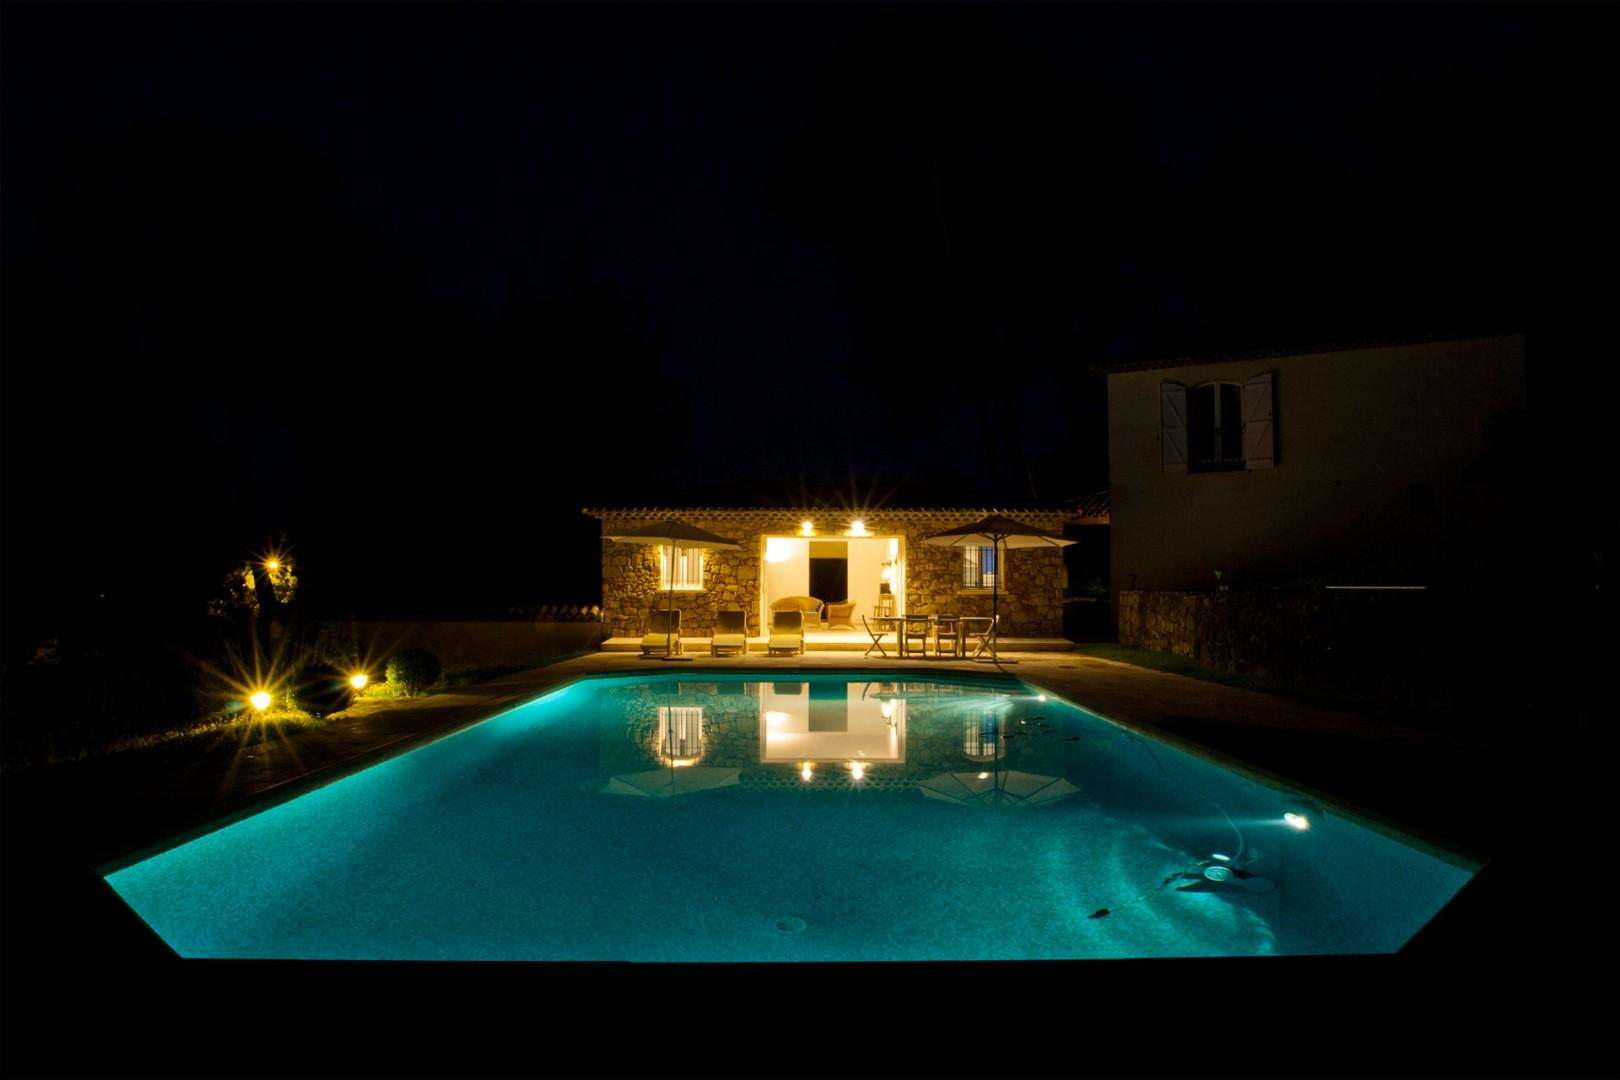 Enjoy a nighttime view of the pool